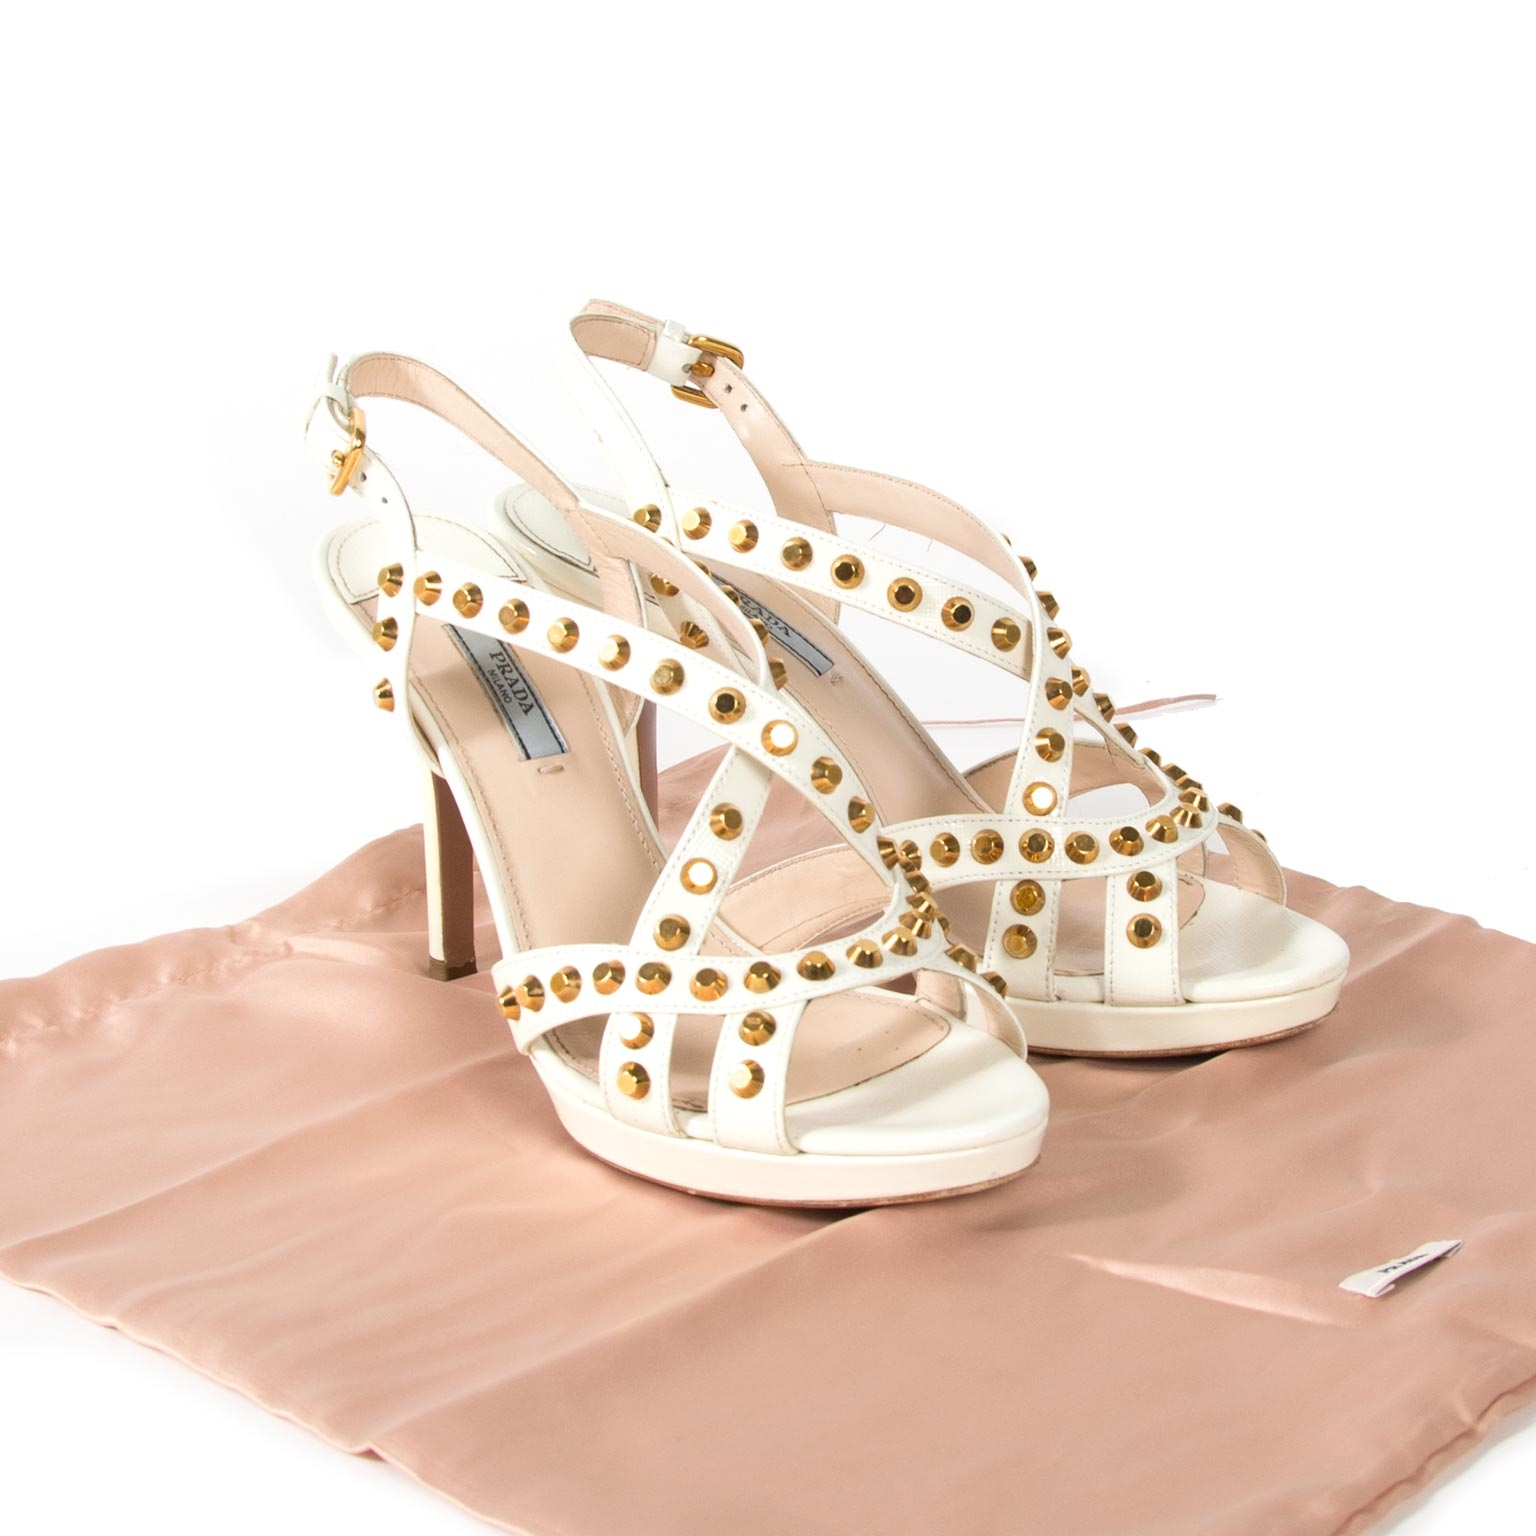 buy prada white studded saffiano platform sandals now online at labellov vintage fashion webshop belgium